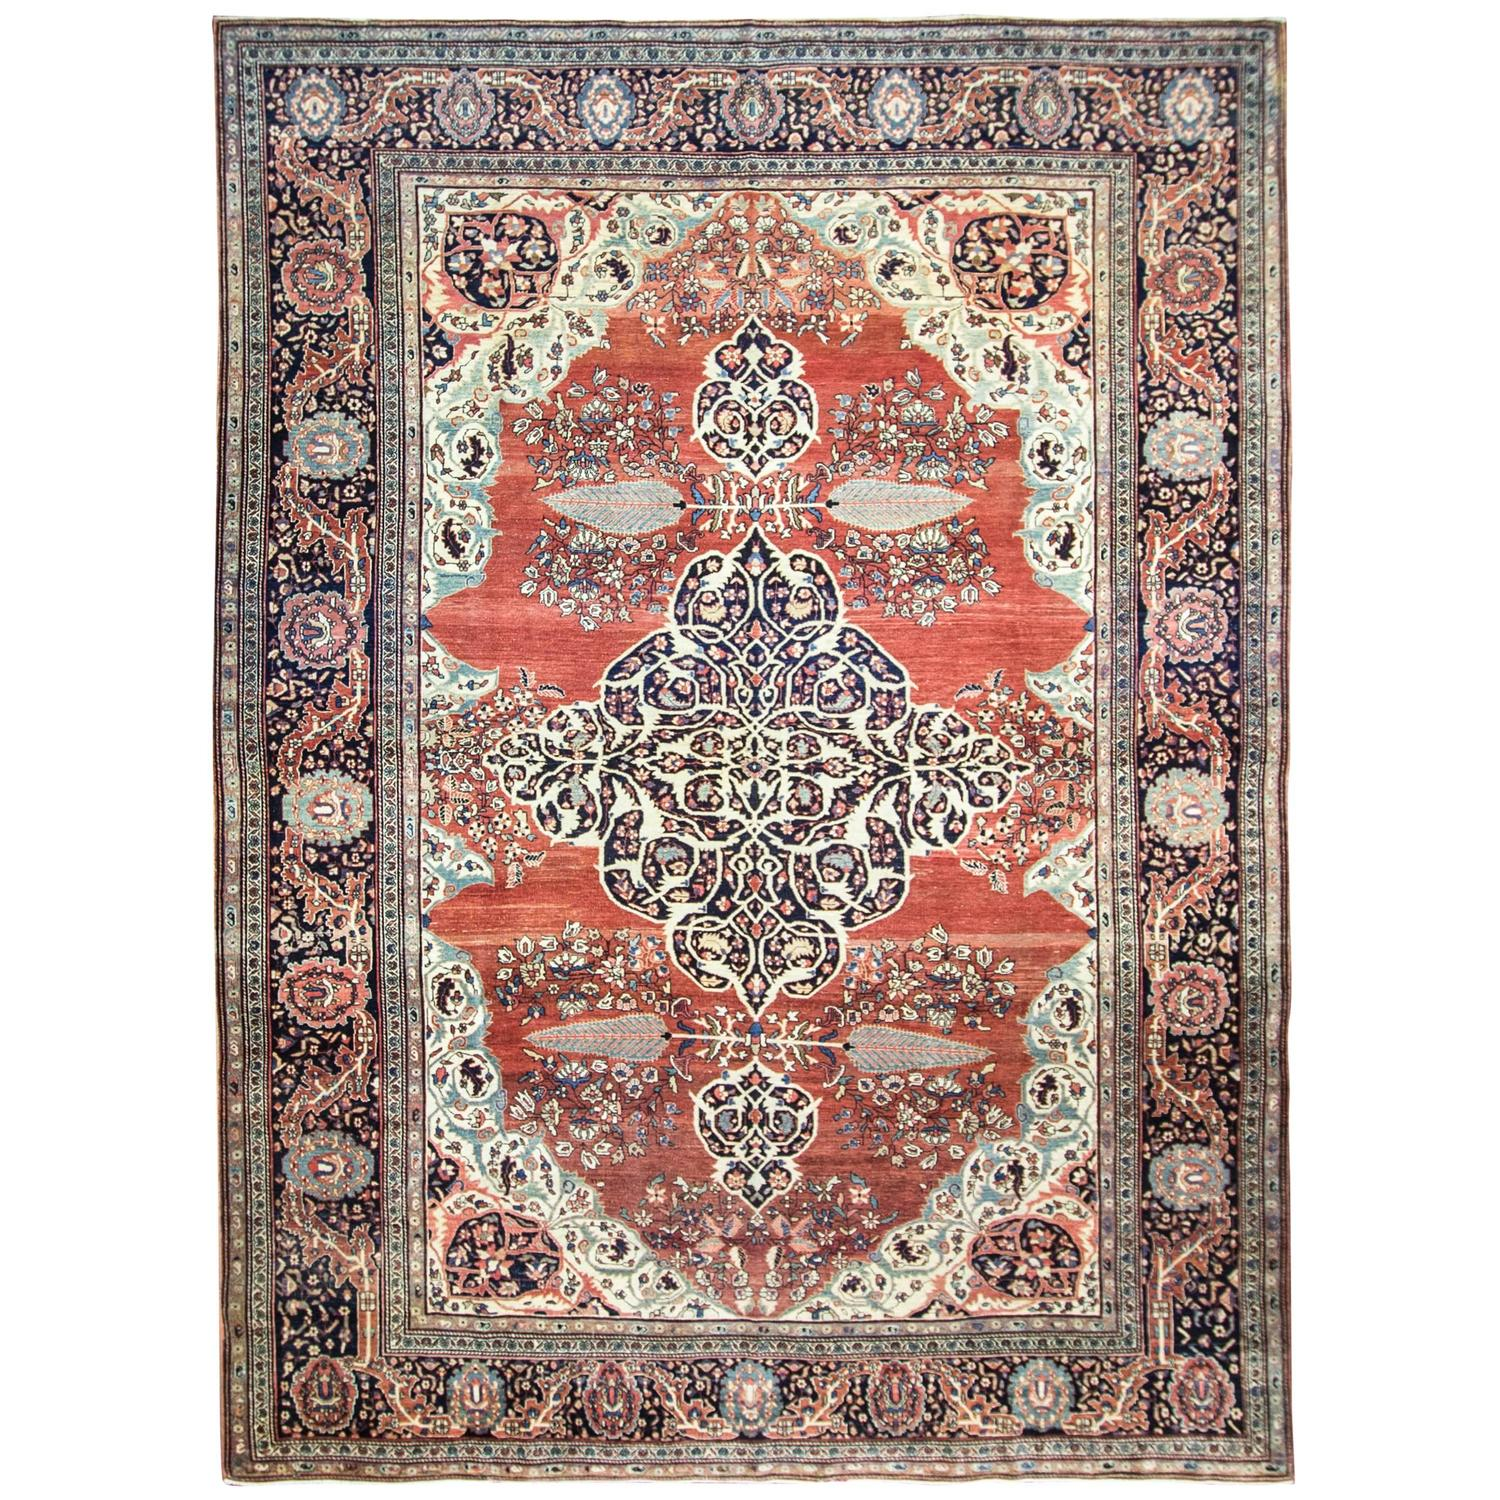 Striking Antique Feraghan Sarouk Carpet For Sale At 1stdibs